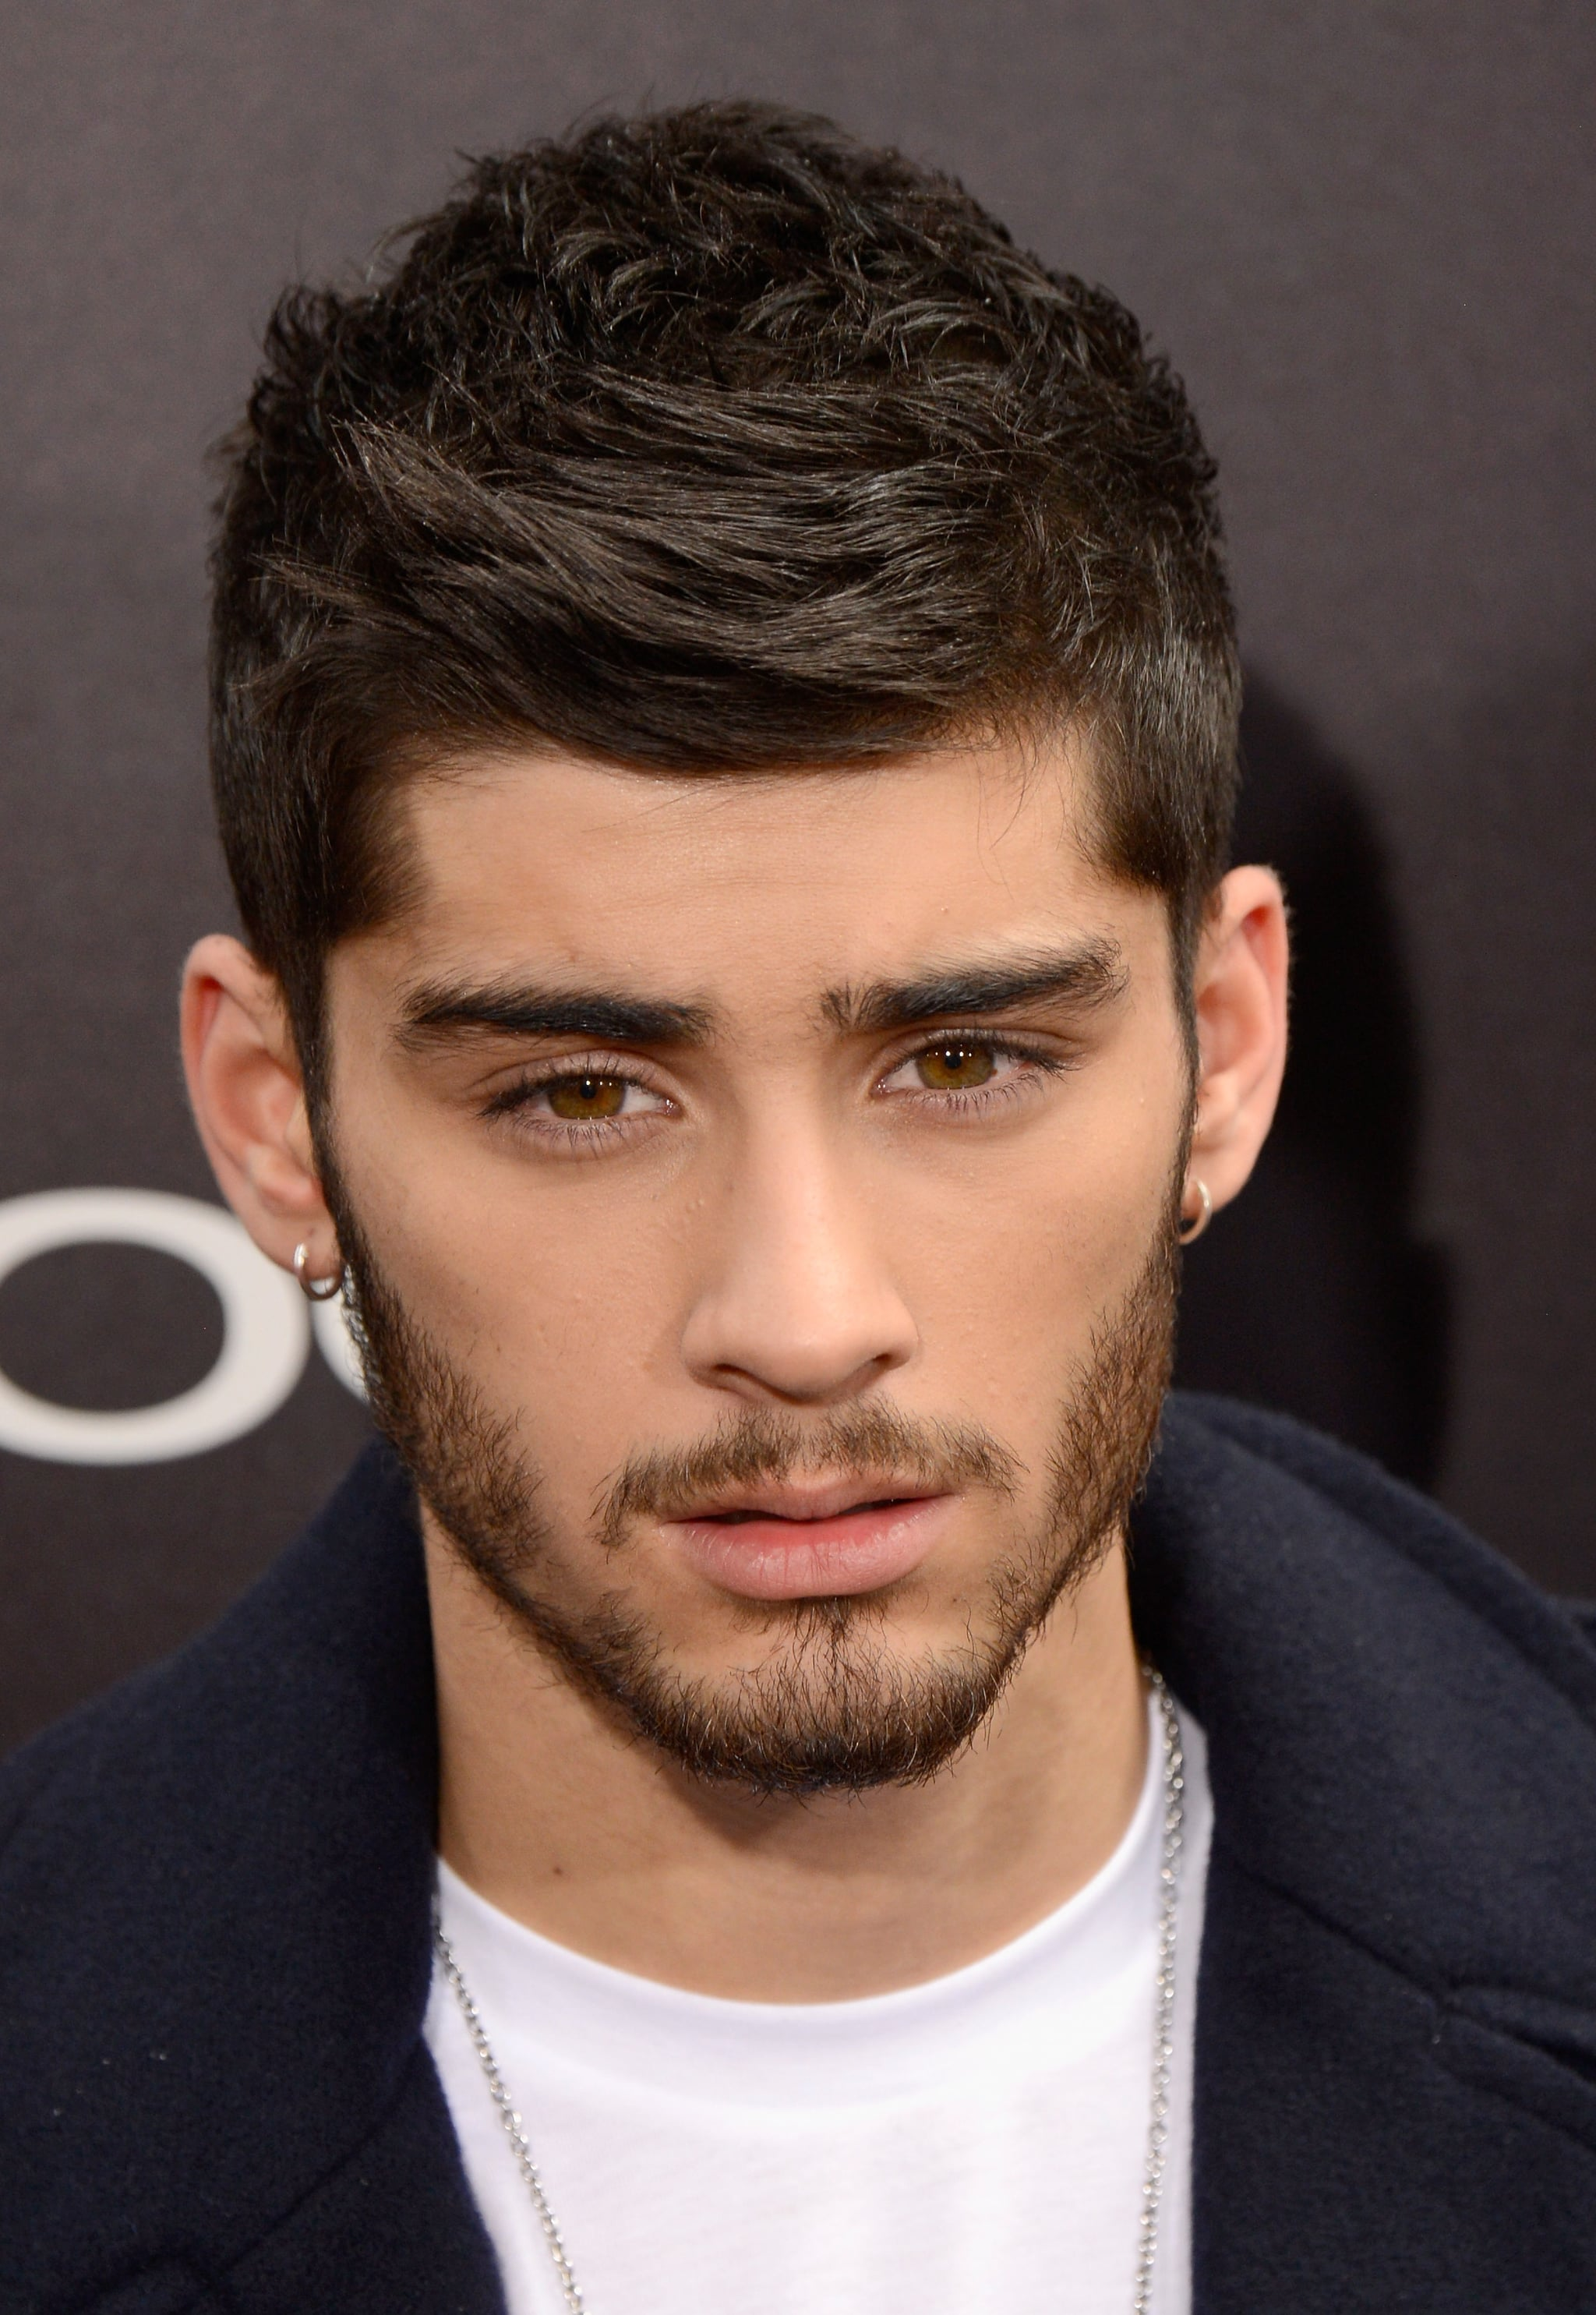 Zayn Malik attended the NYC premiere of the One Direction movie.